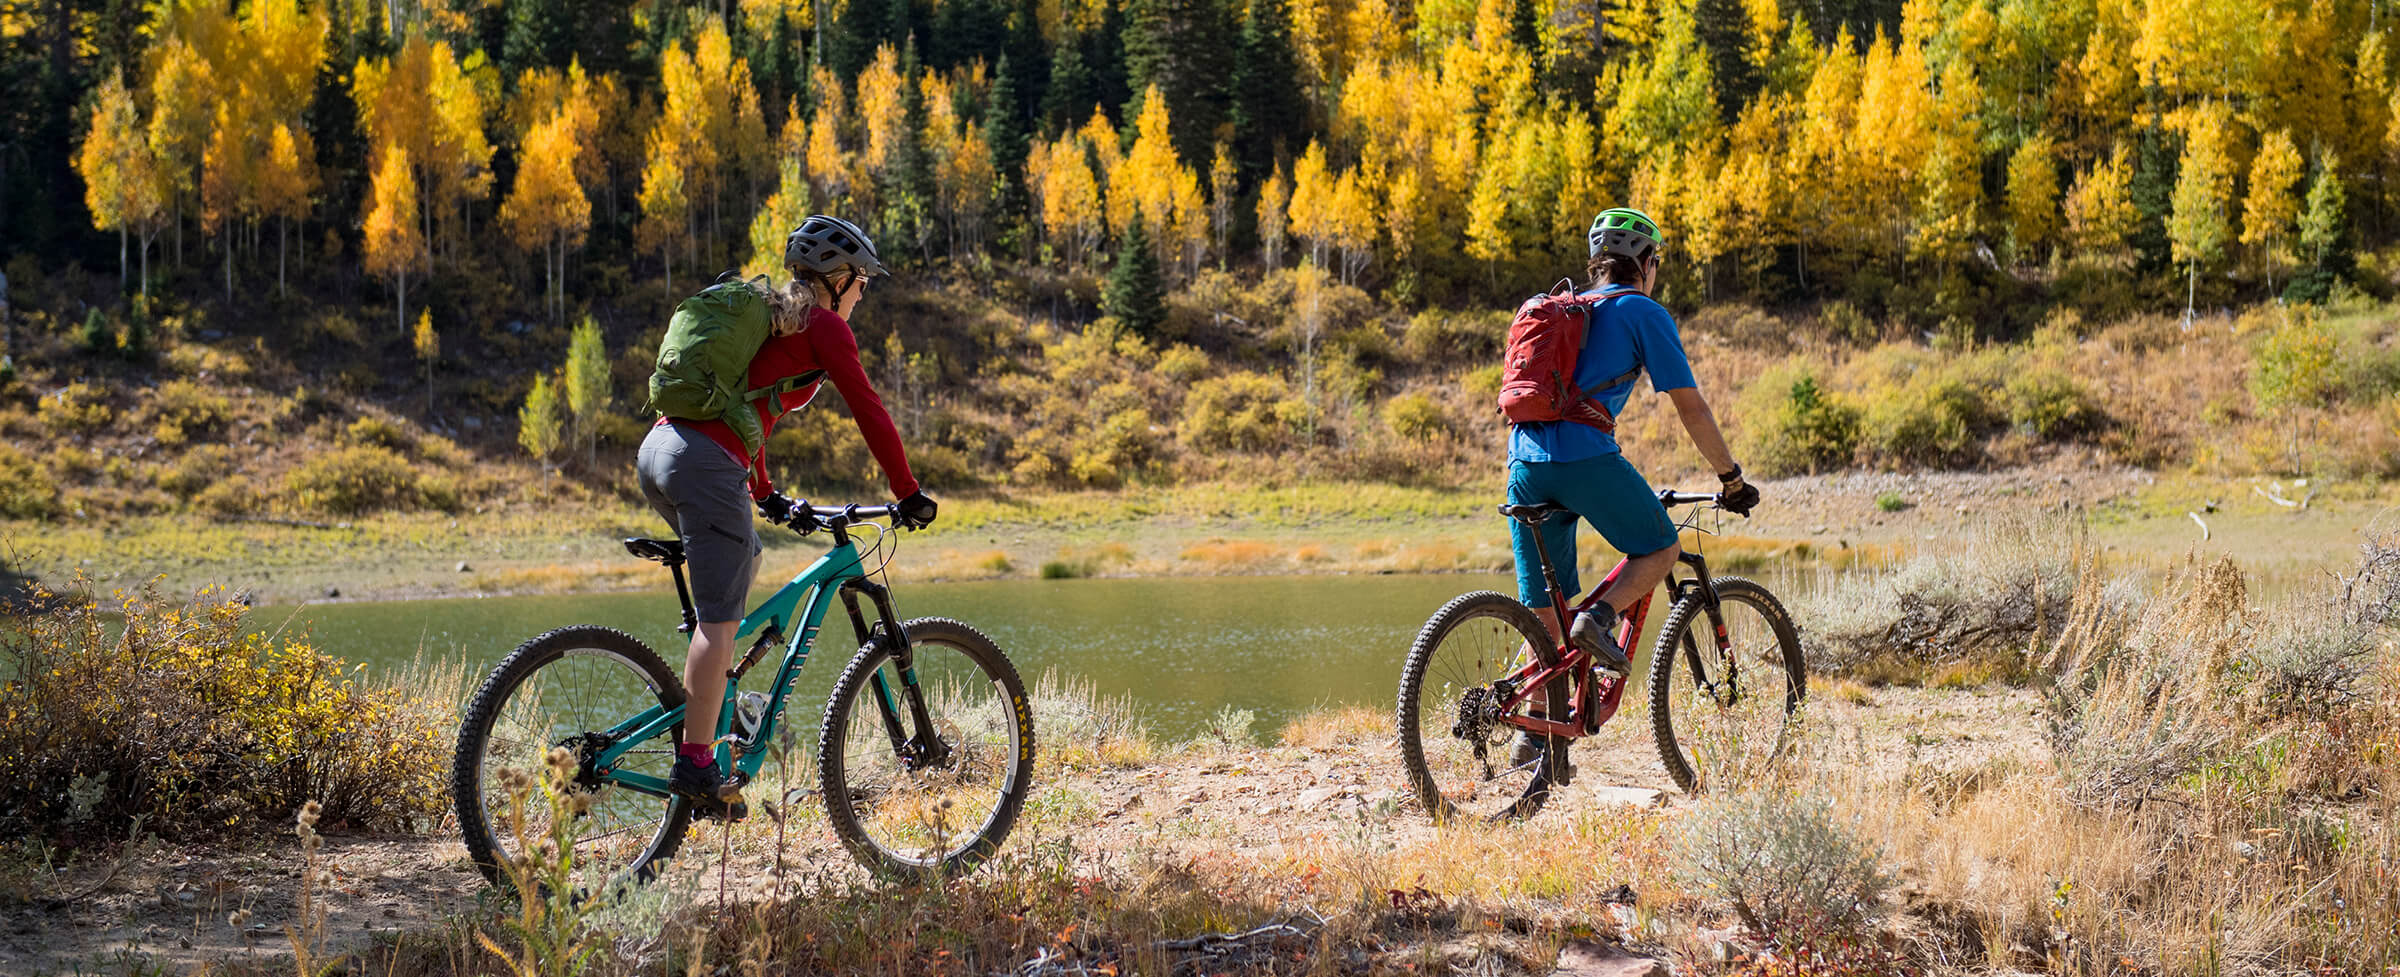 Two People Biking in the Mountains